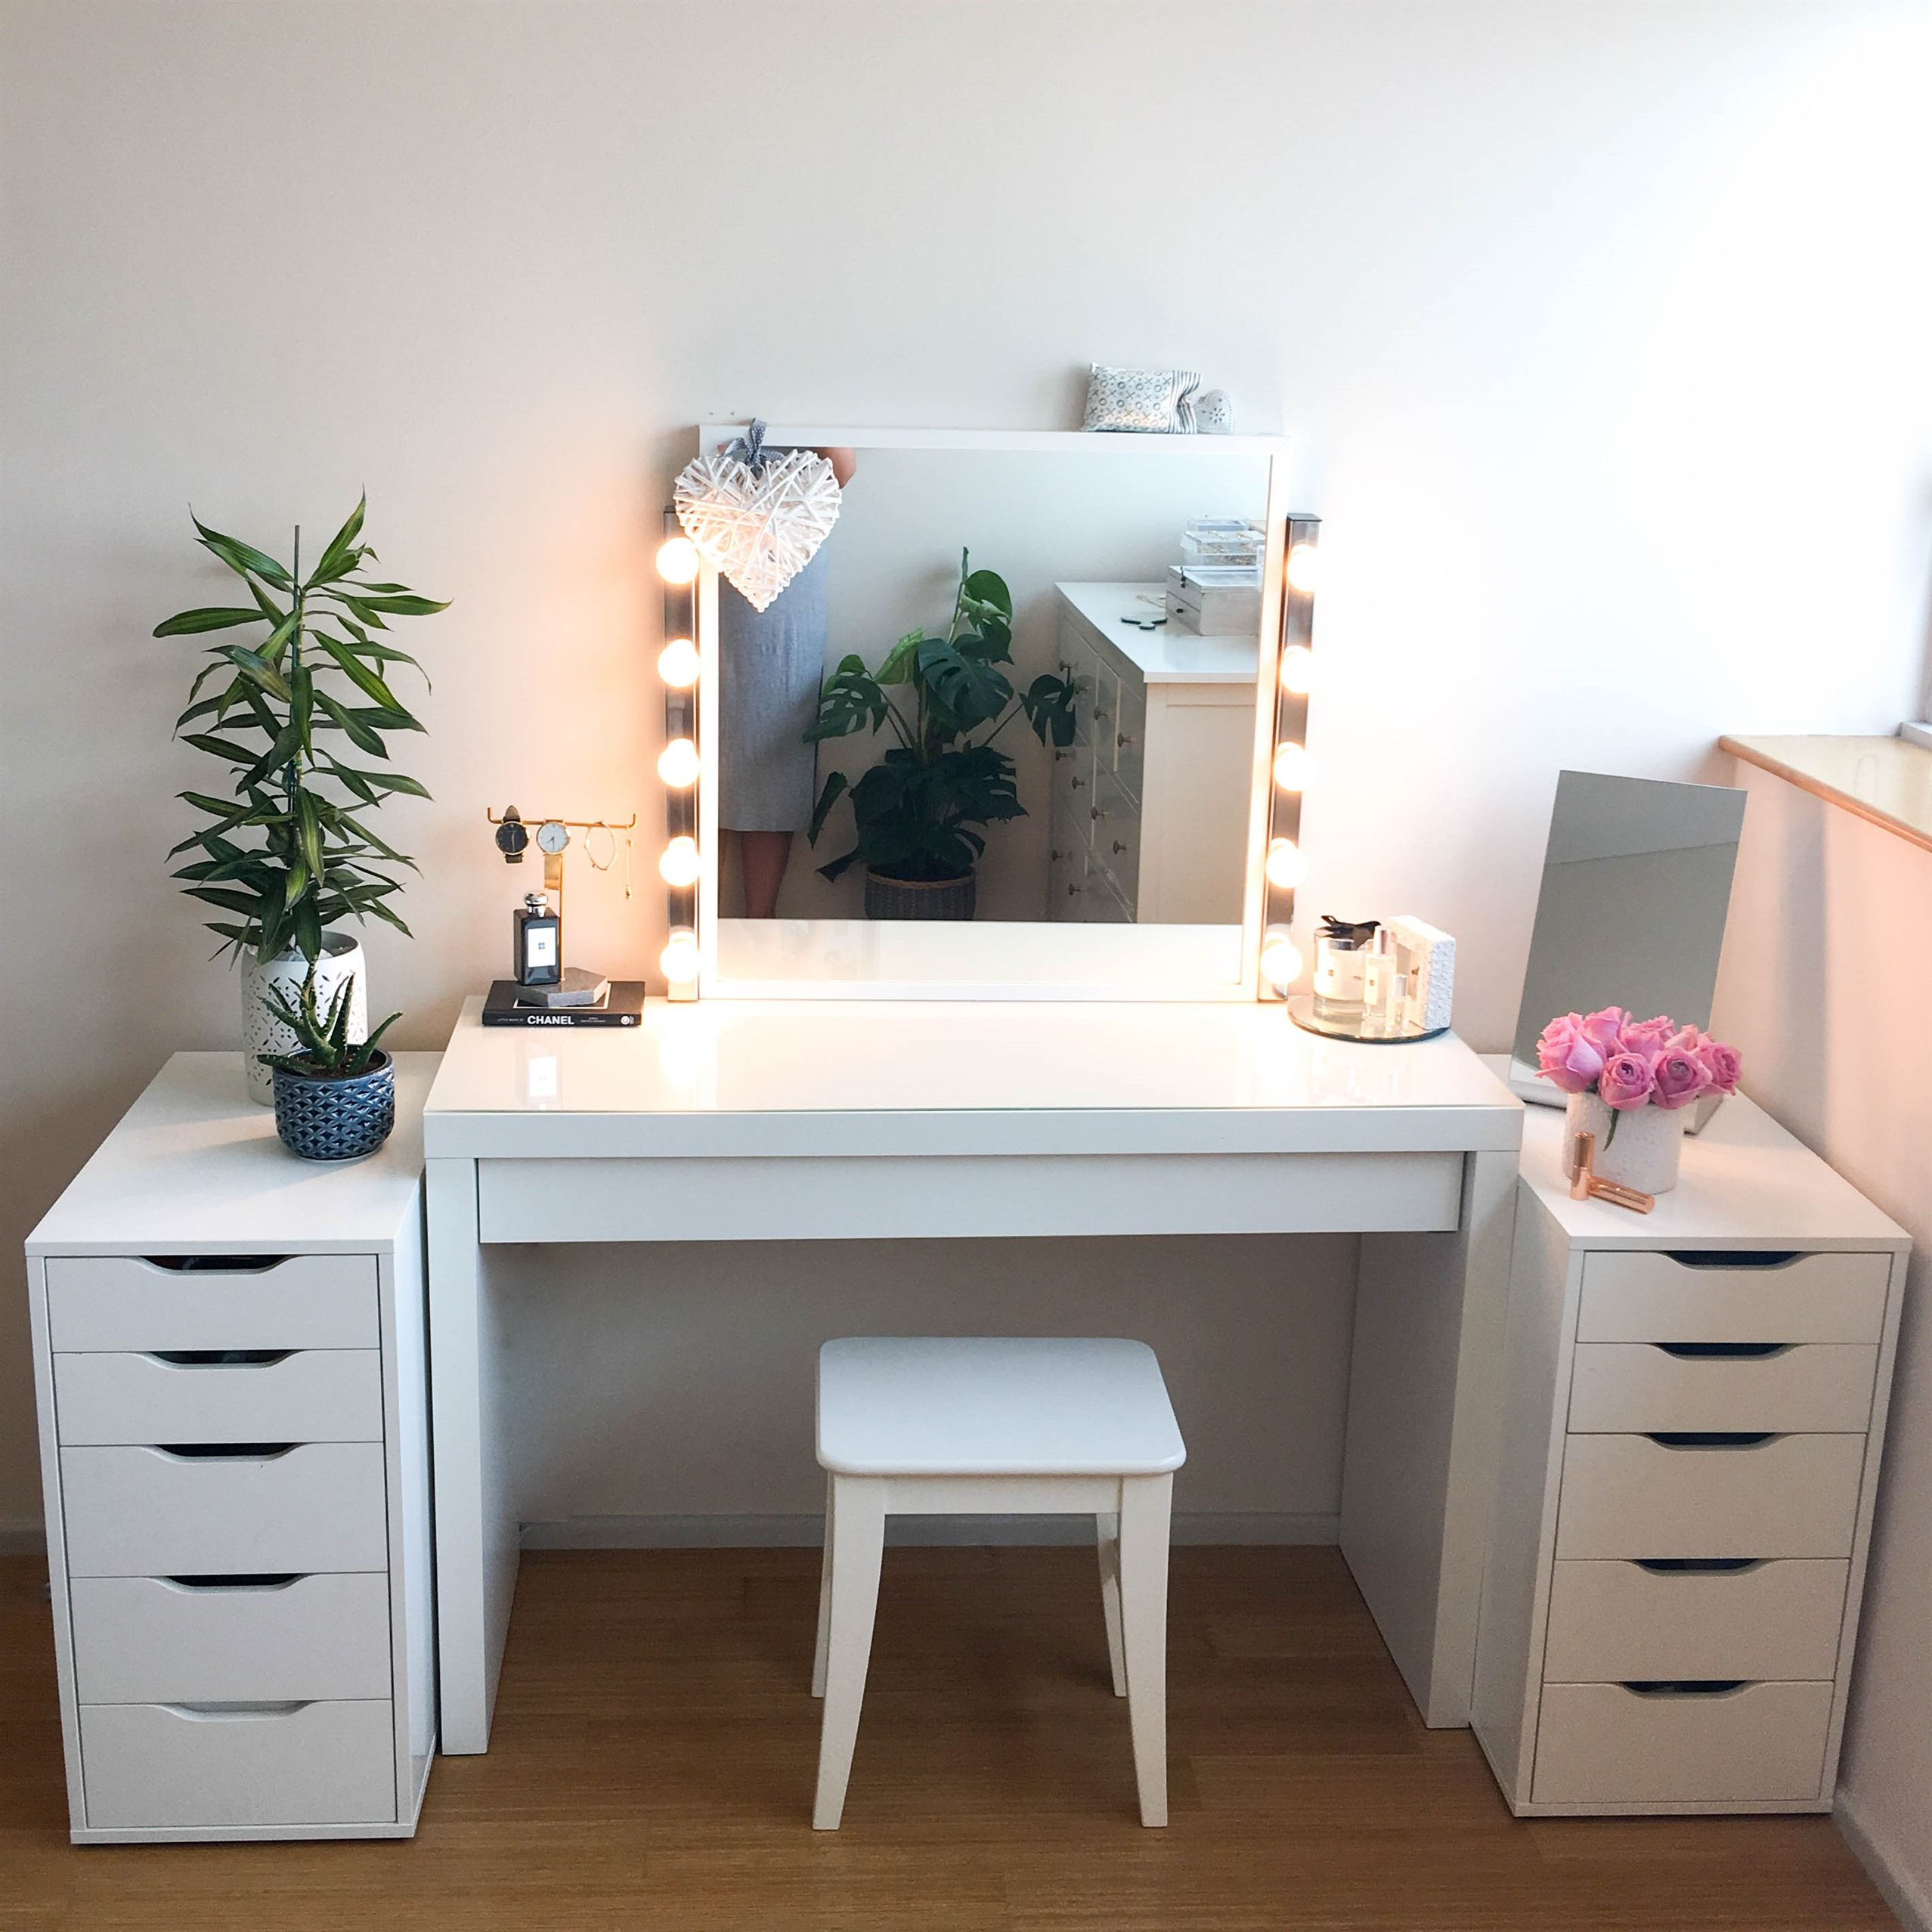 Table Ideas26 Exceptional Makeup Table Ideas SalePrice